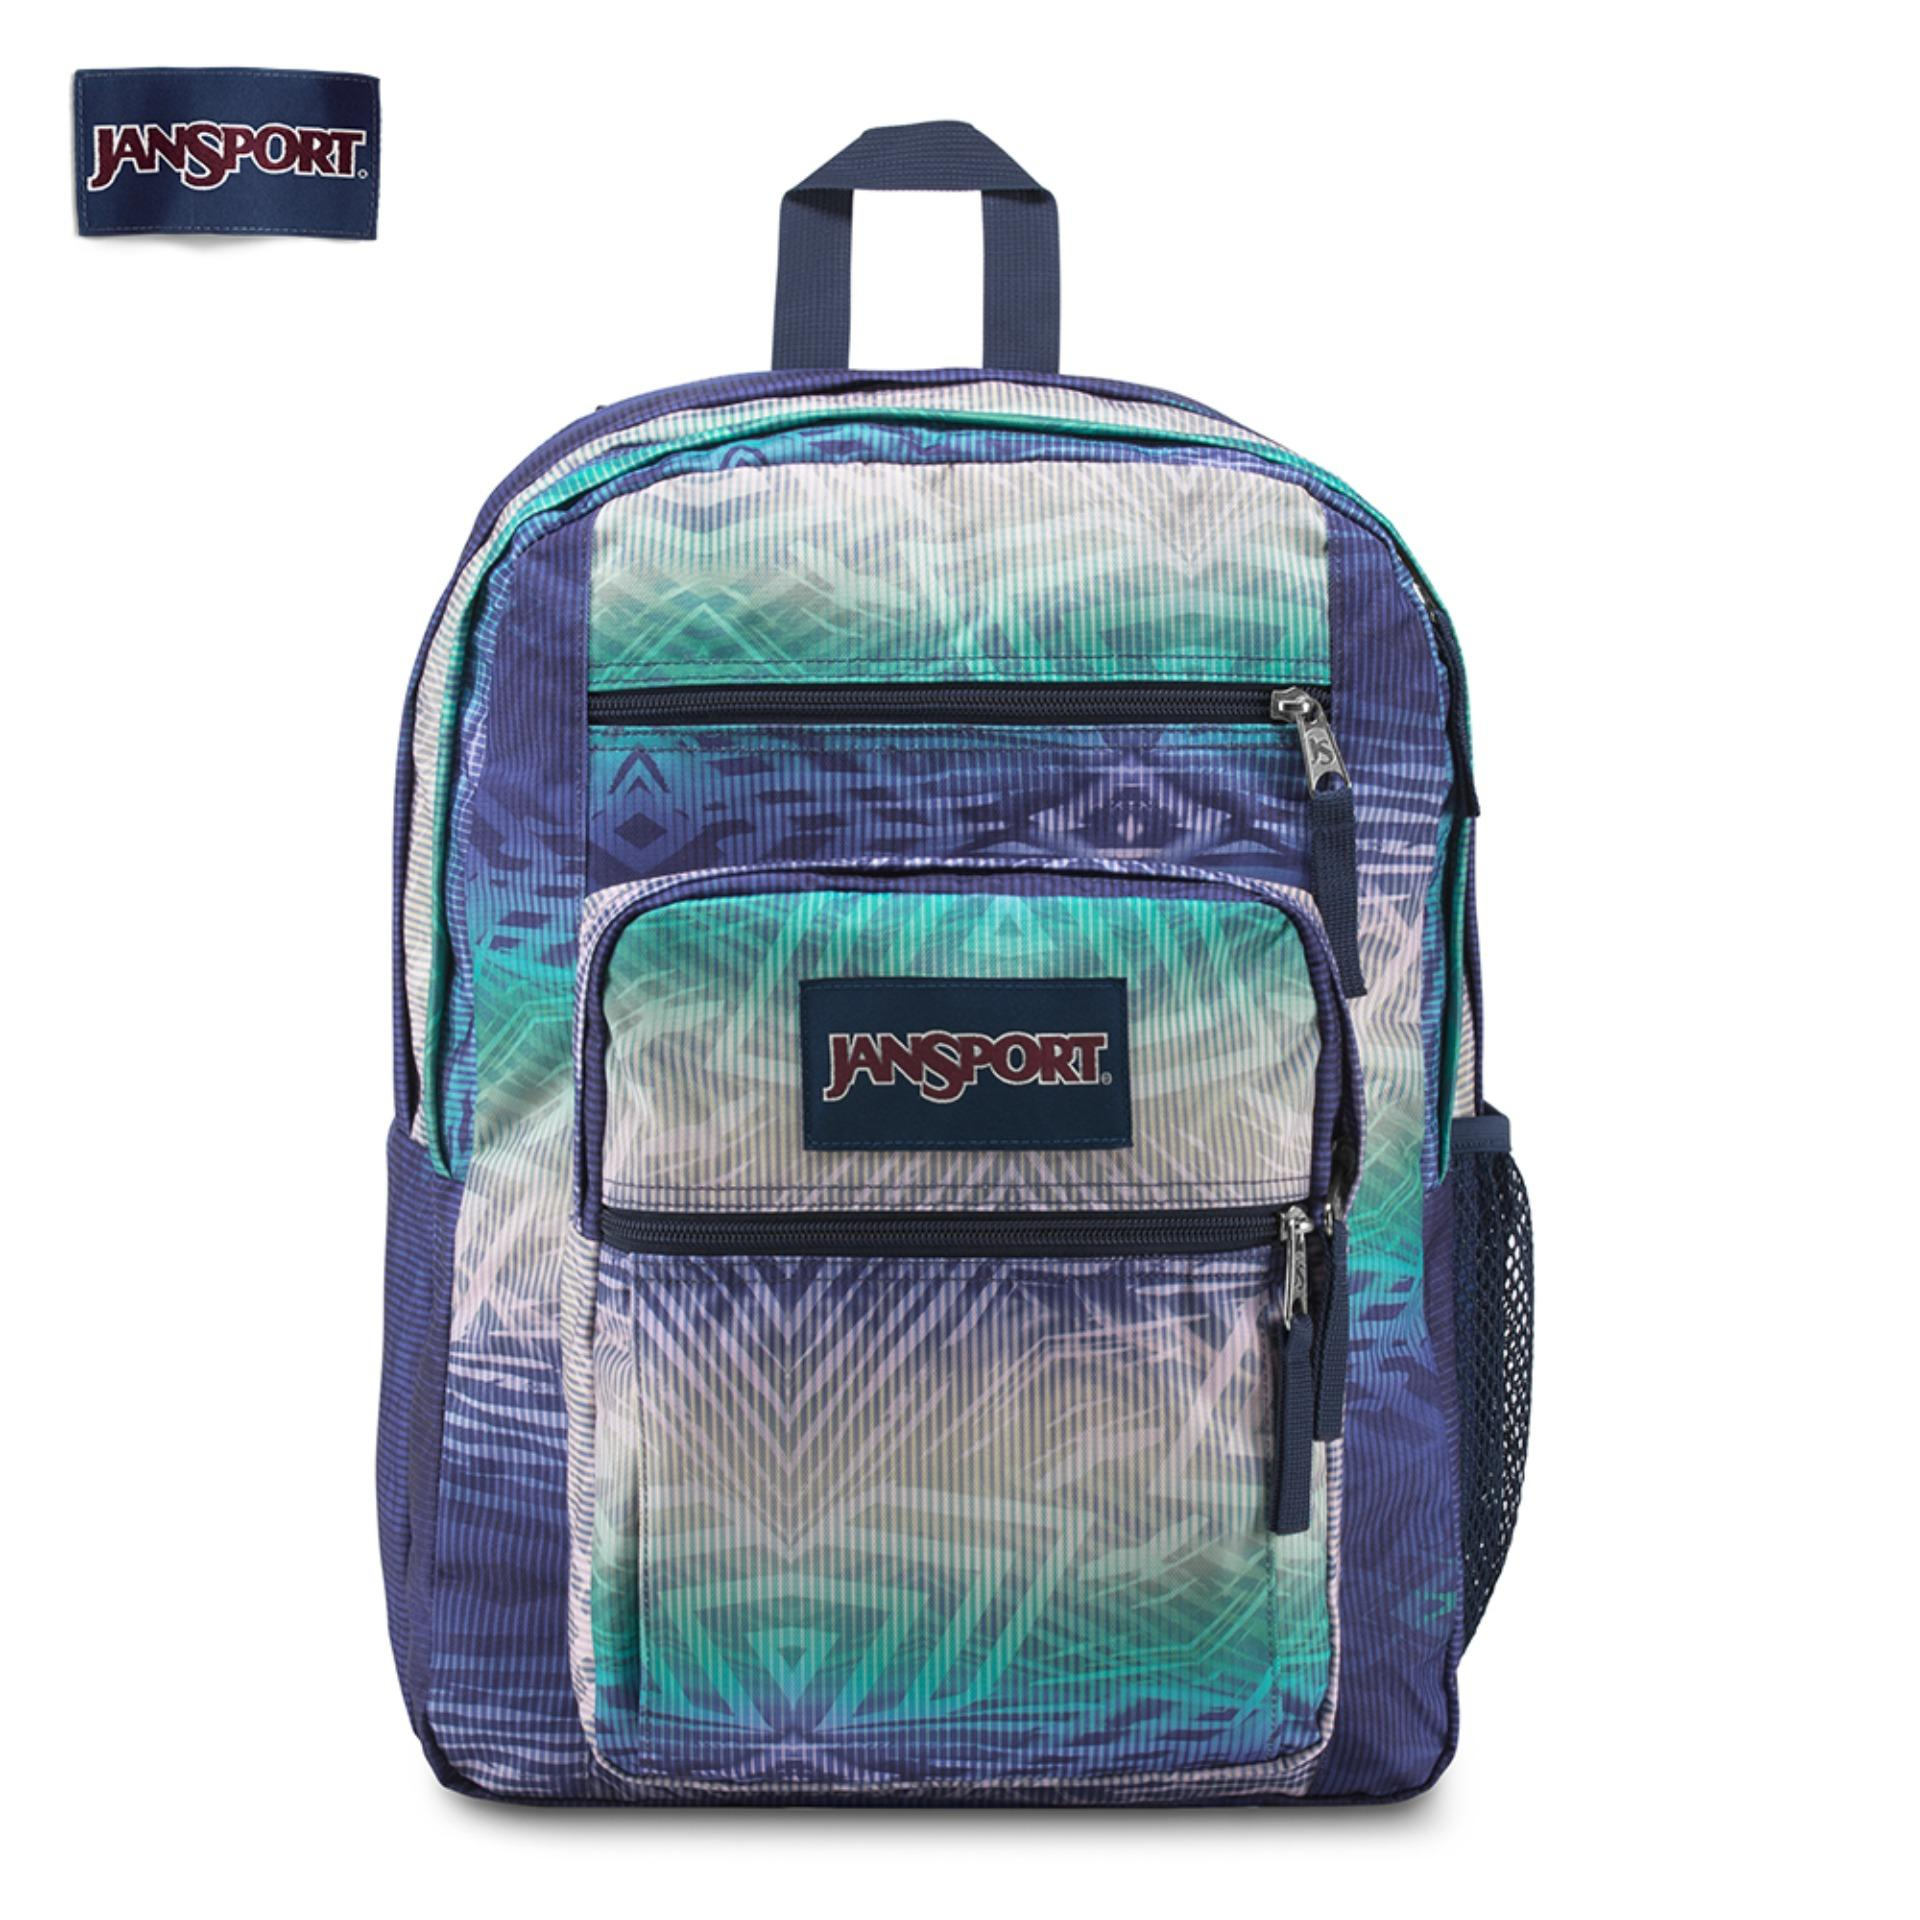 d562421d5705 JanSport Philippines - JanSport Womens Backpack for sale - prices ...